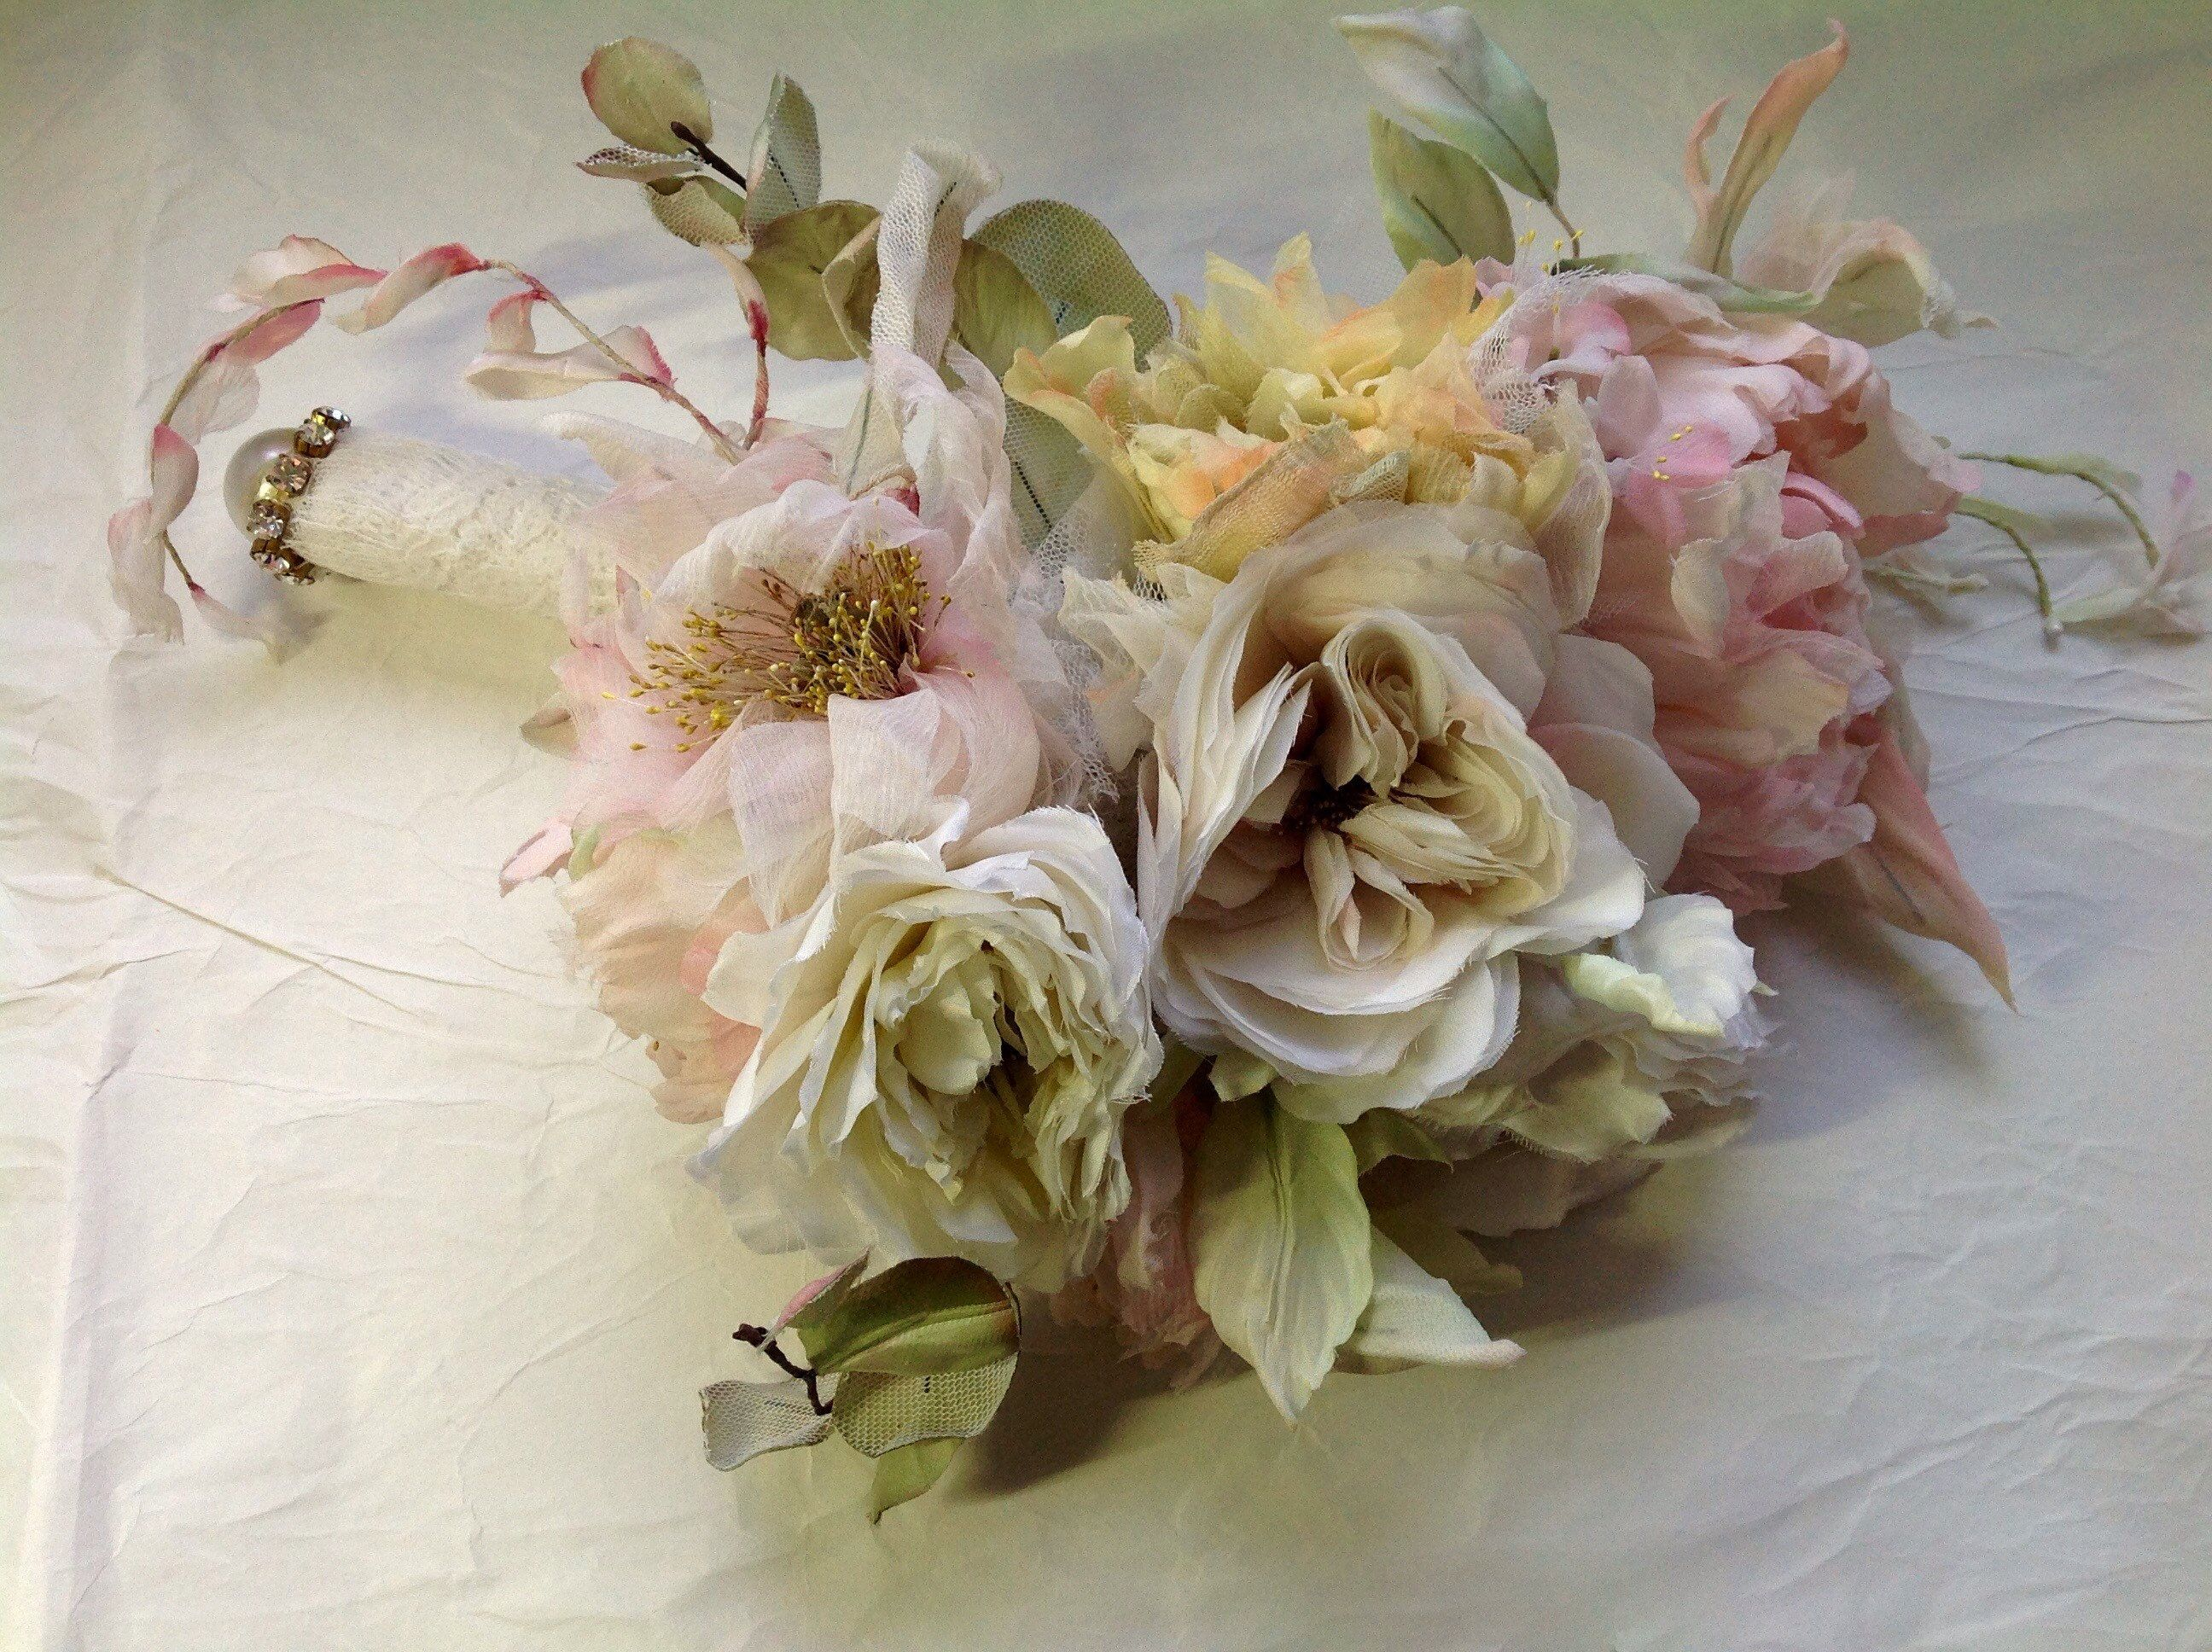 Bouquet Sposa Shabby Chic.Cascading Bridal Bouquet With Silk Flowers In Shabby Chic Style